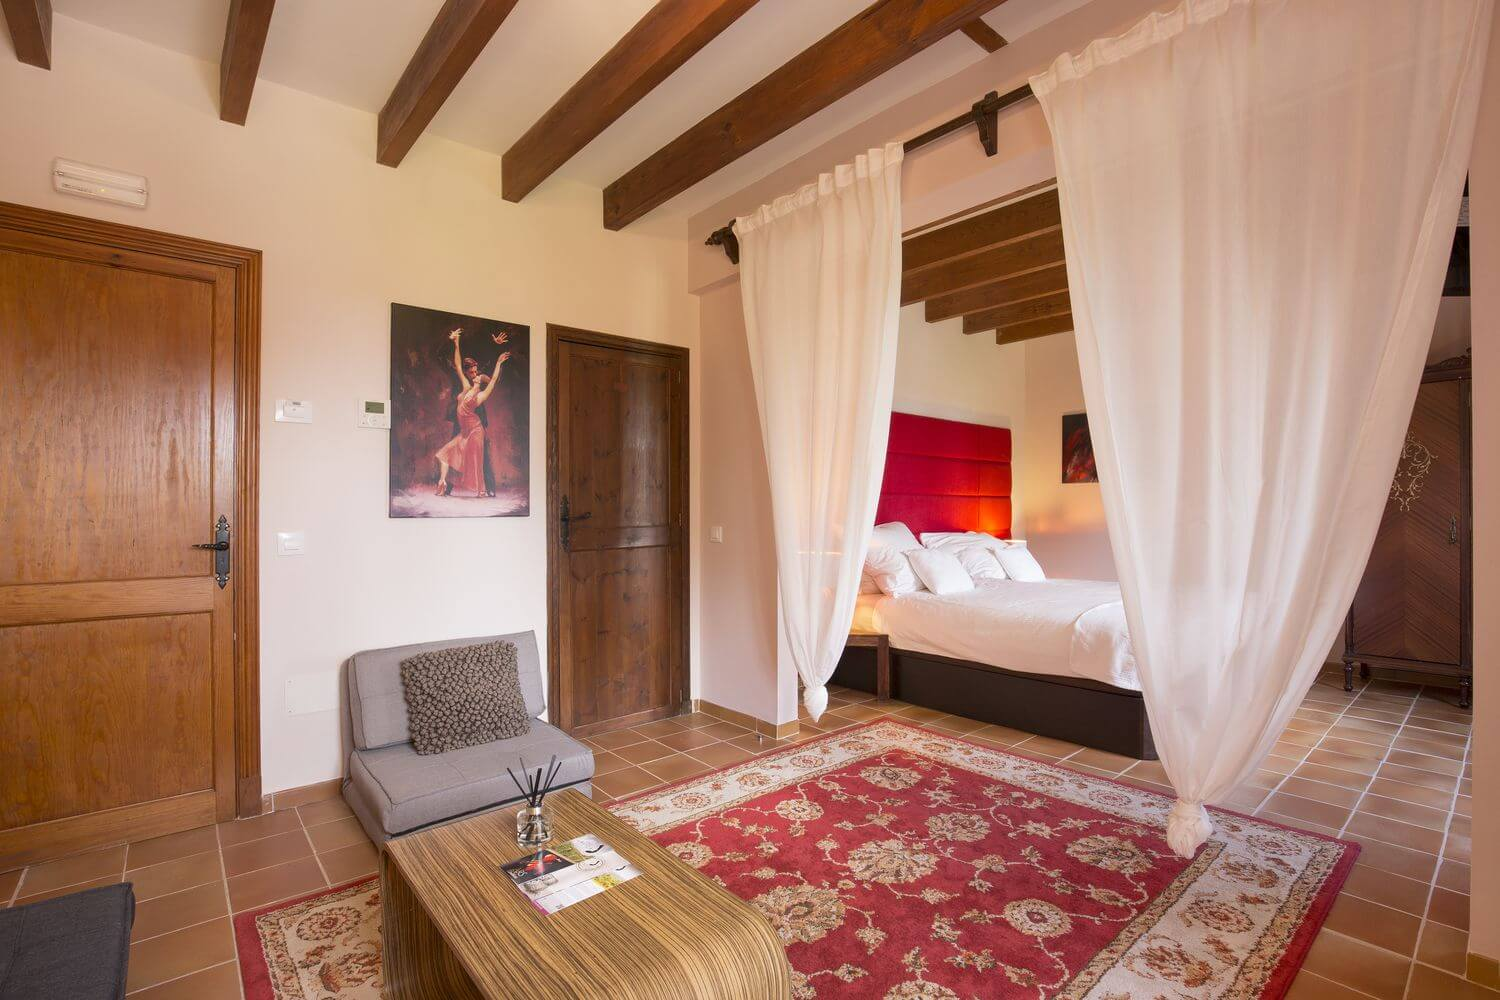 EsPouet Suite: The First Bedroom